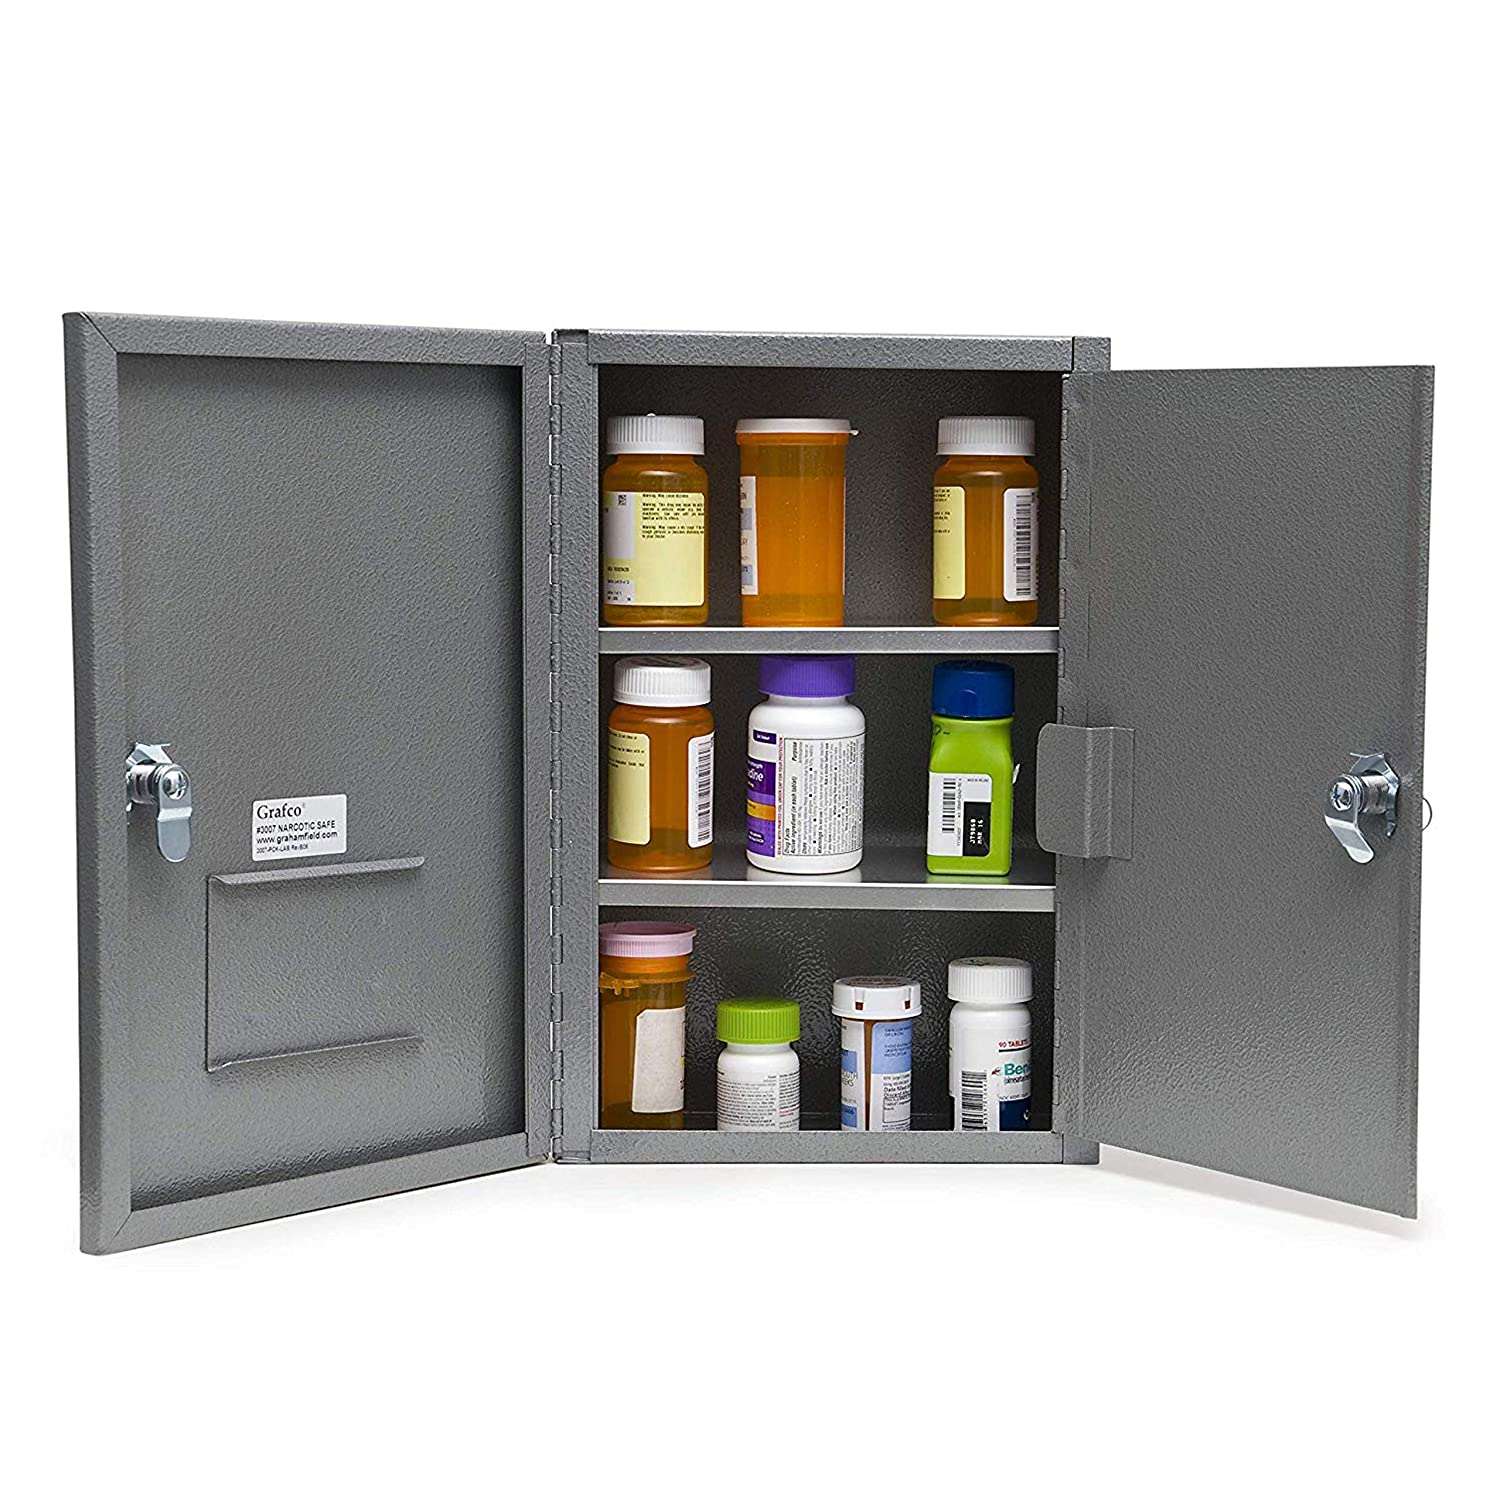 Grafco Locking Narcotic Safe with Double Door, Medium Size, 12 lb. Capacity, 3007